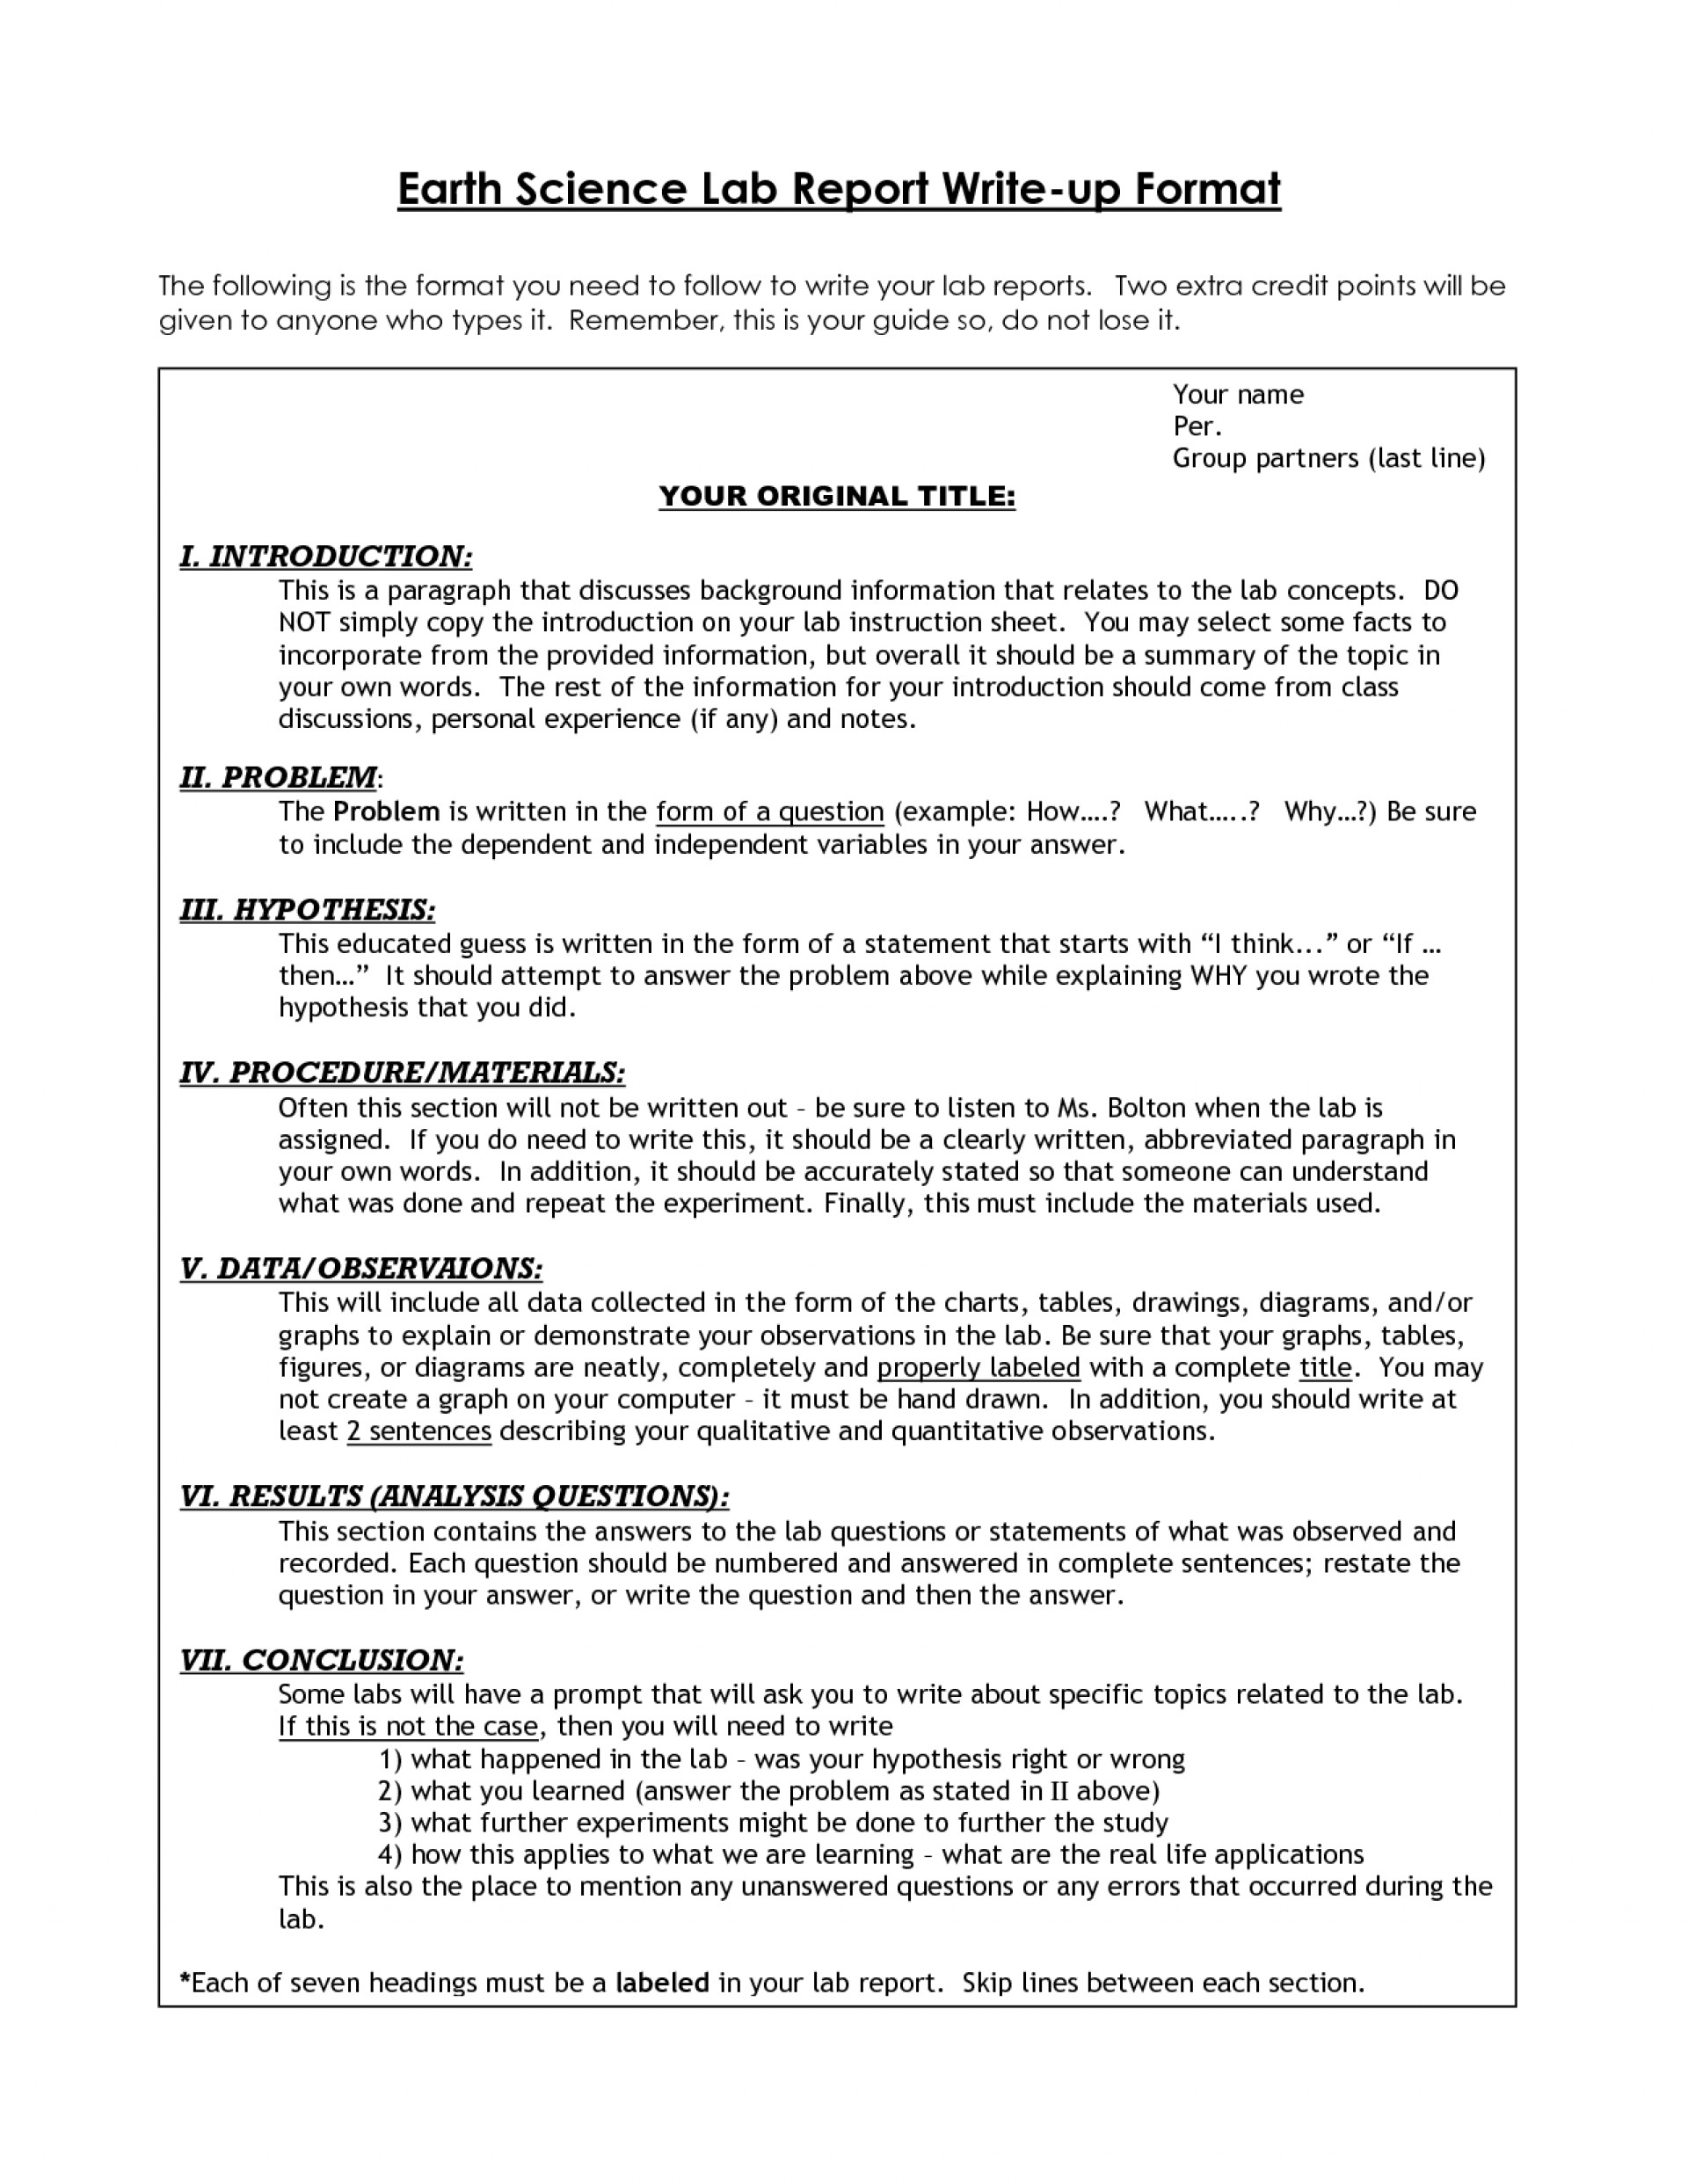 006 Pay For Research Paper Excellent Equal Work In India Performance Writing 1920